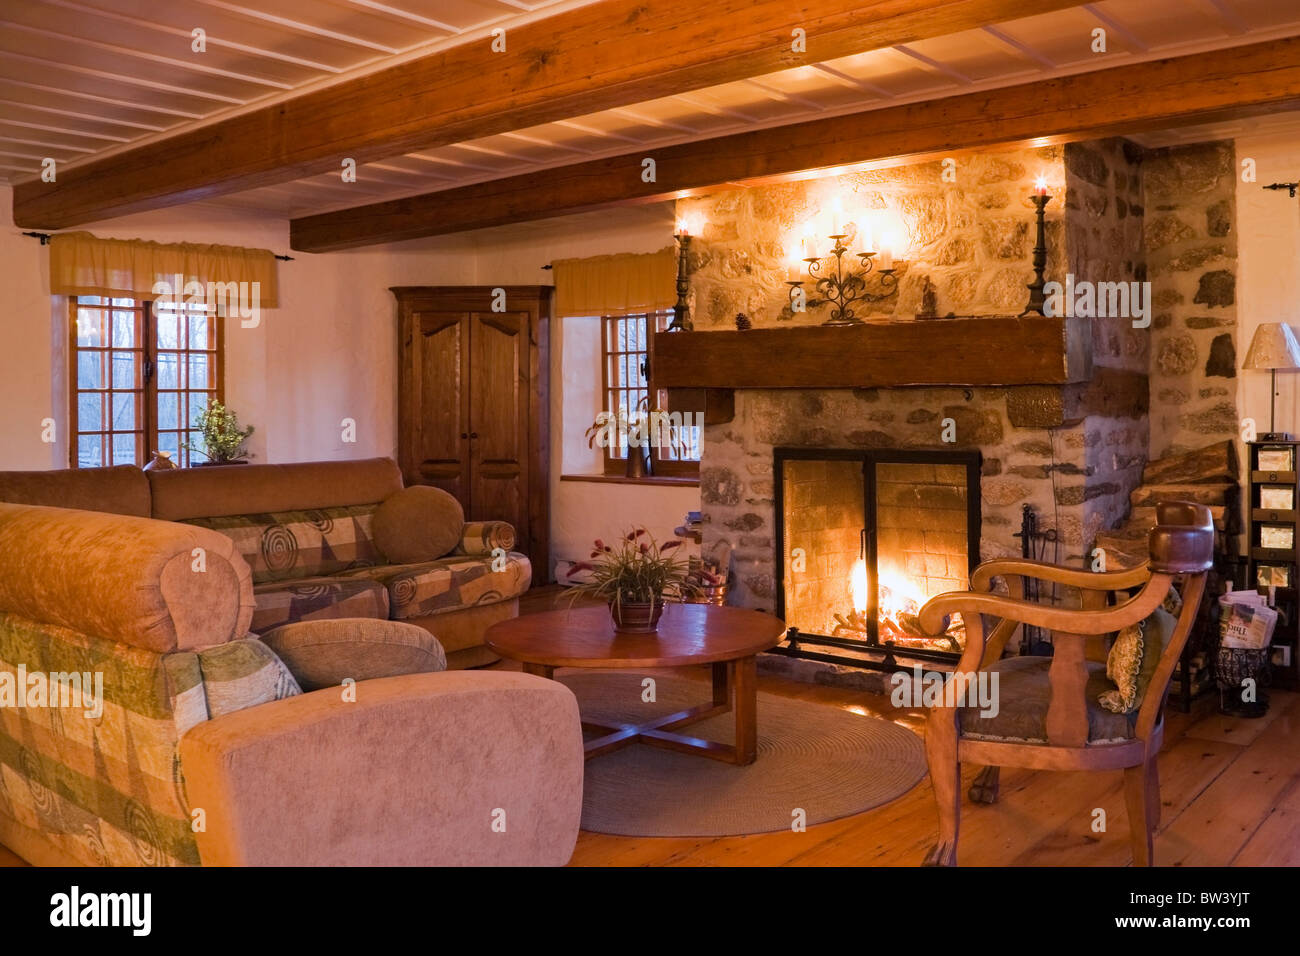 Interior view of the main room in a residential log home, Laval, Quebec, Canada - Stock Image